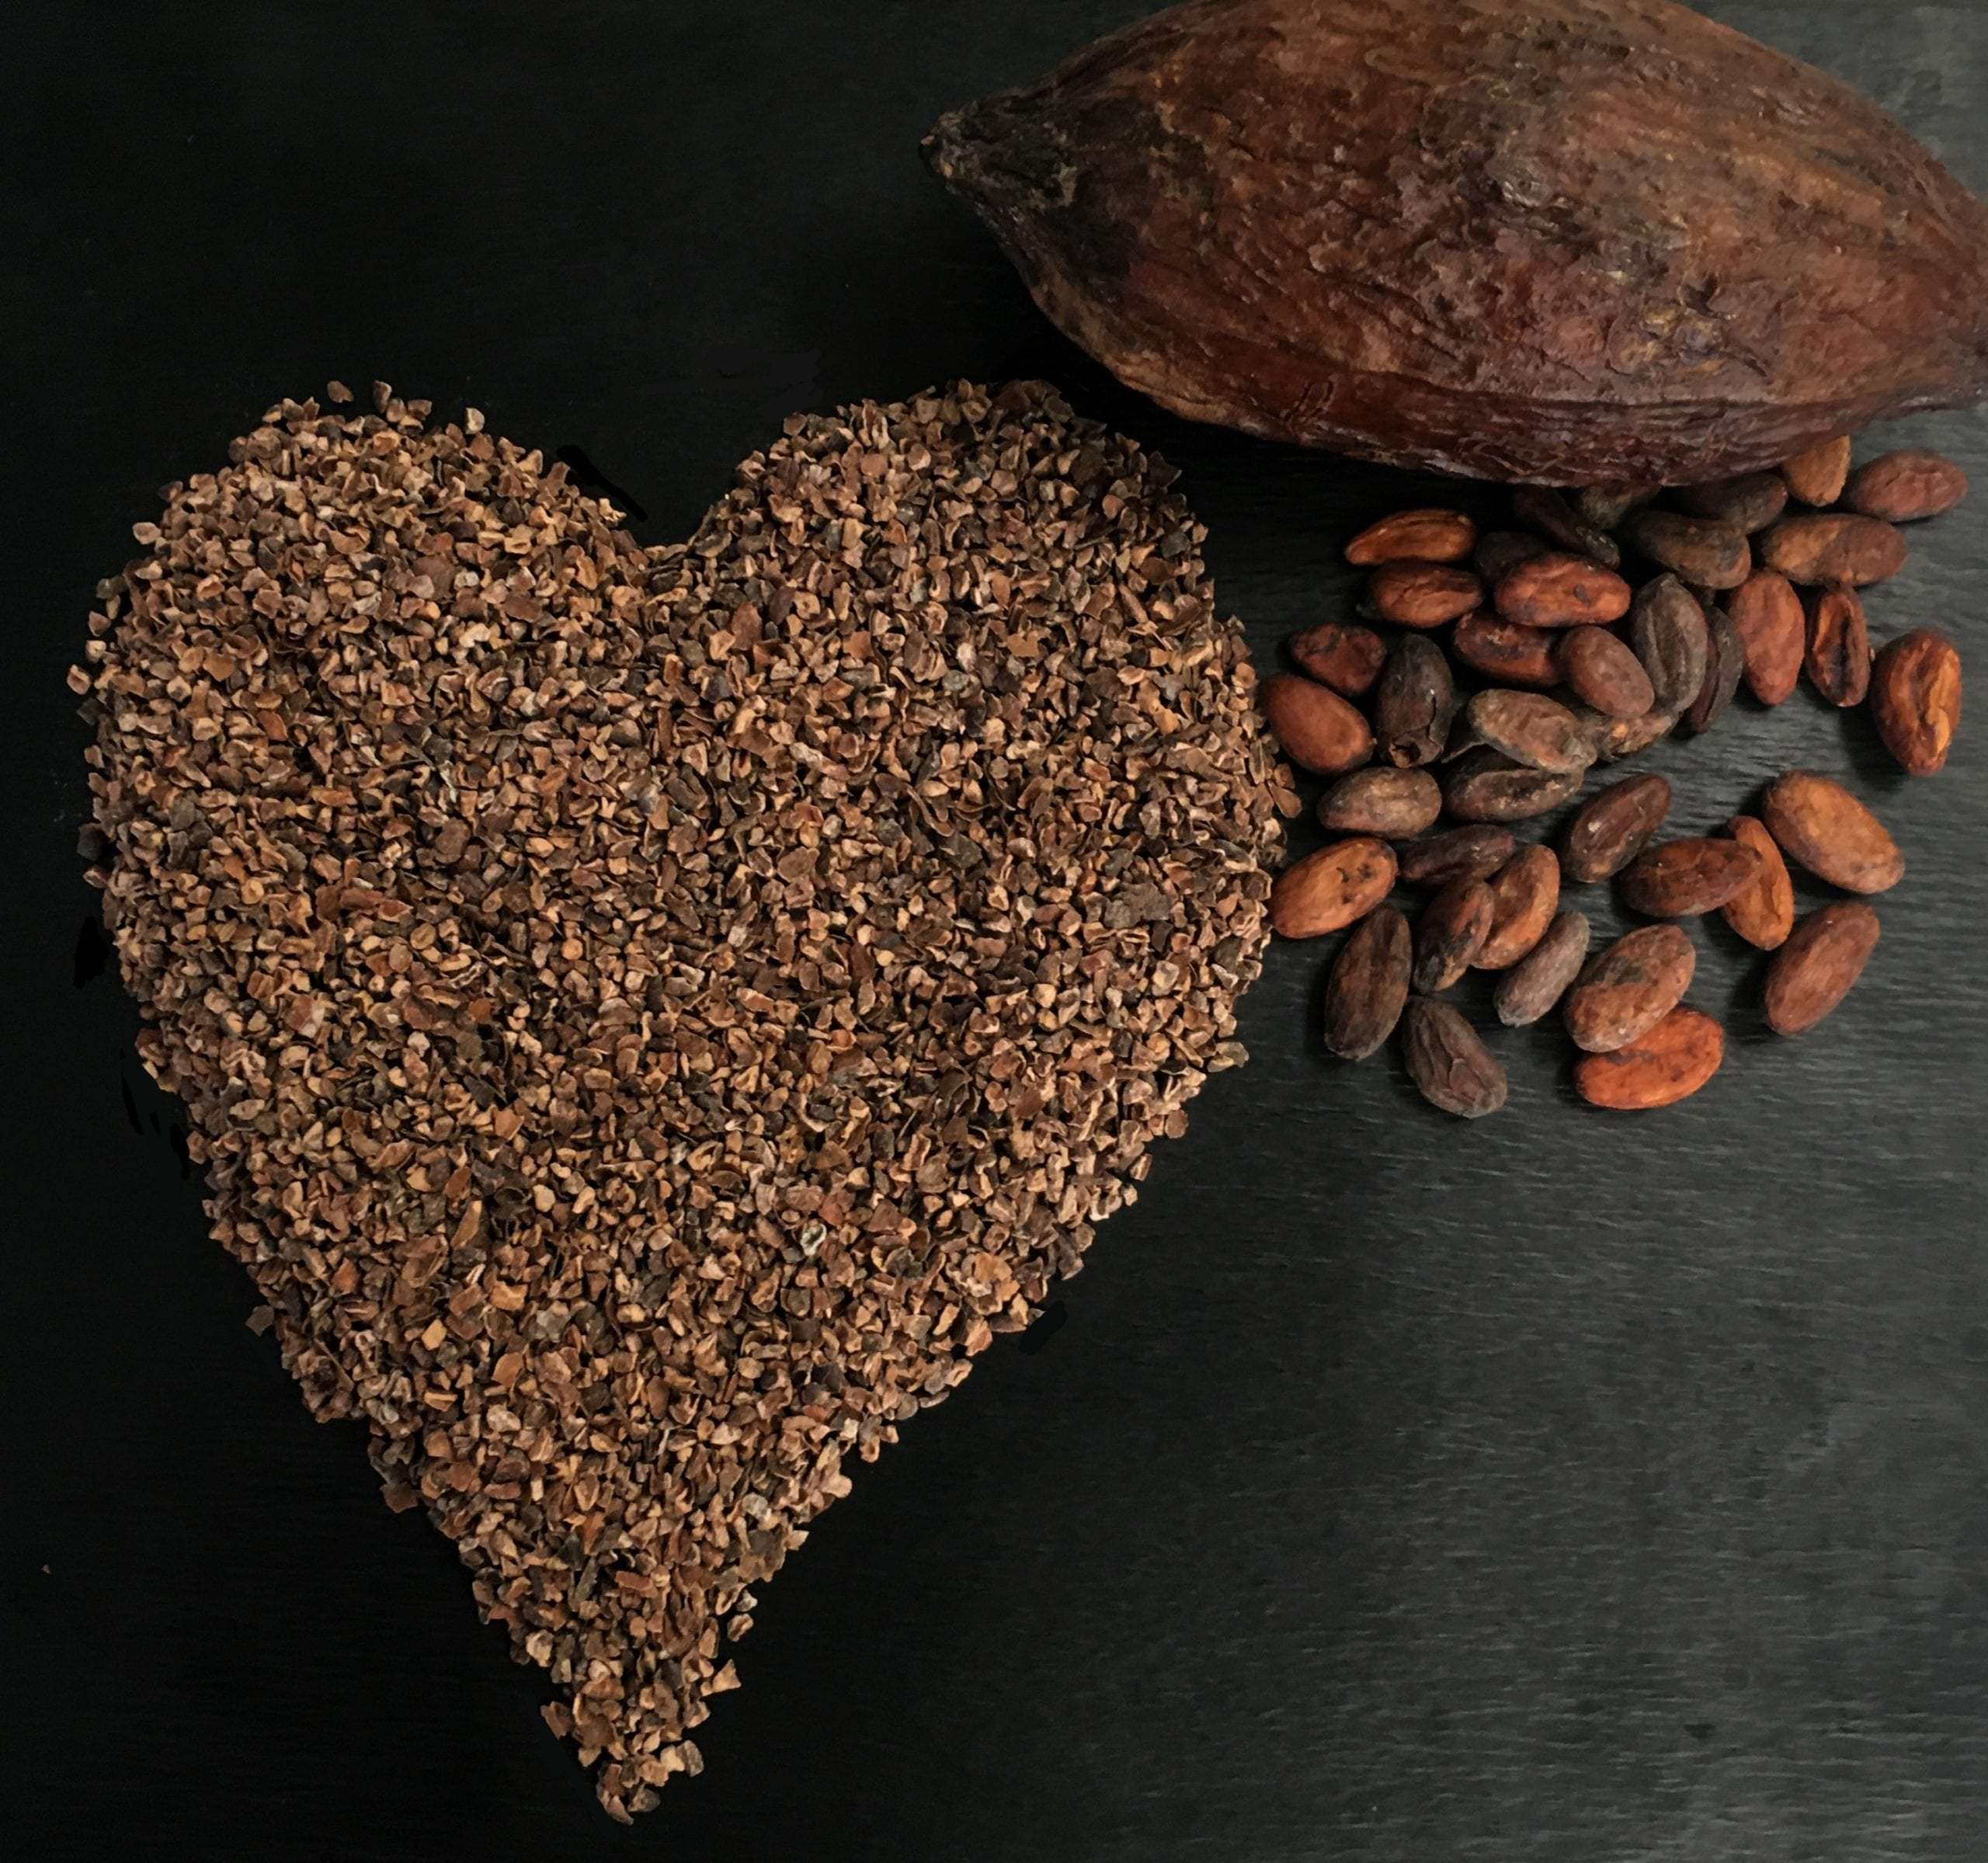 Cocoa beans next to ground up cocoa beans in the shape of a heart